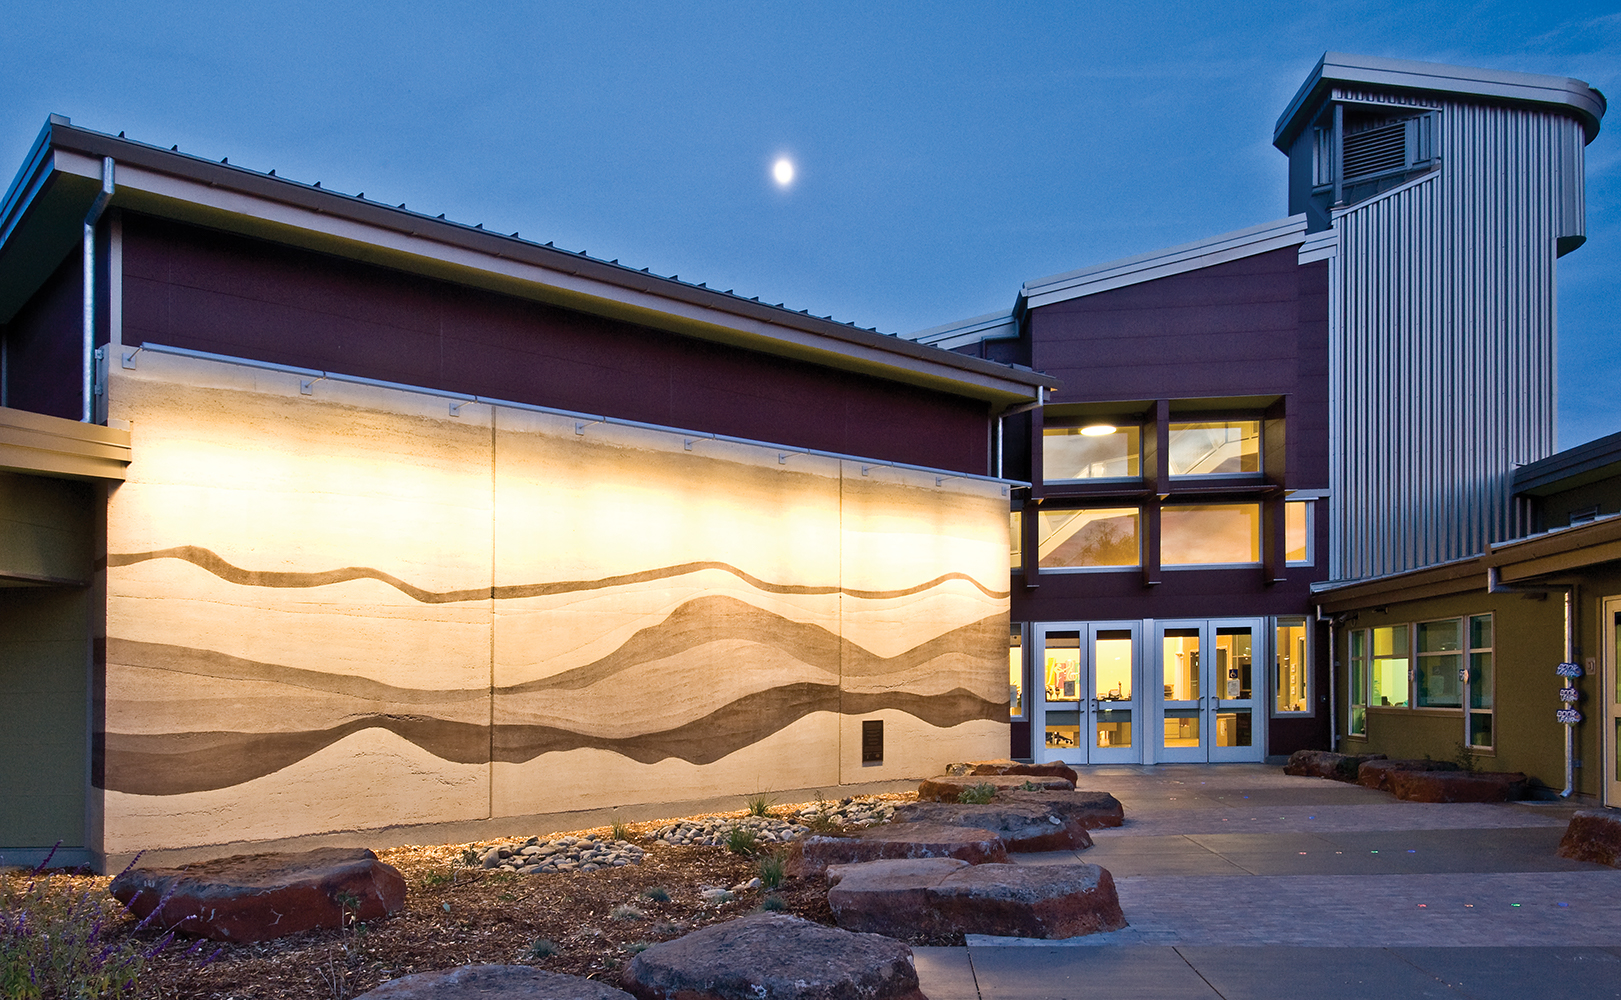 Advantus outdoor light fixtures highlight a beautiful exterior mural from above.